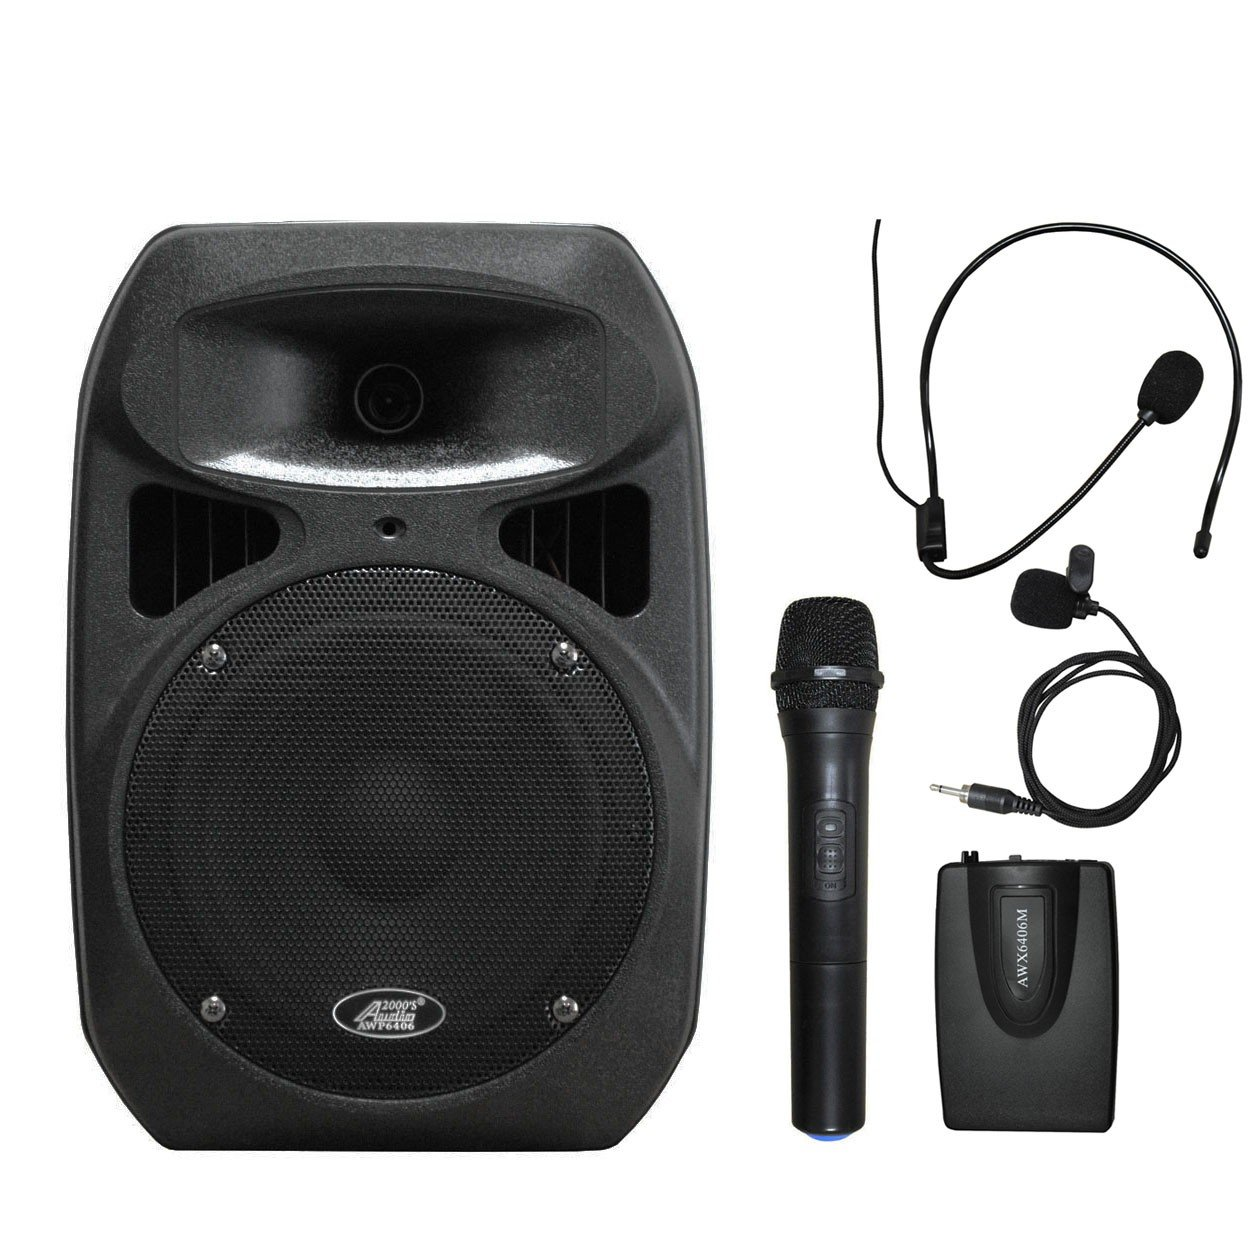 Audio 2000s AWP6408L 50W 8'' Dual Channel Wireless Microphone Portable PA System with Handheld, Headset & Lapel Mics